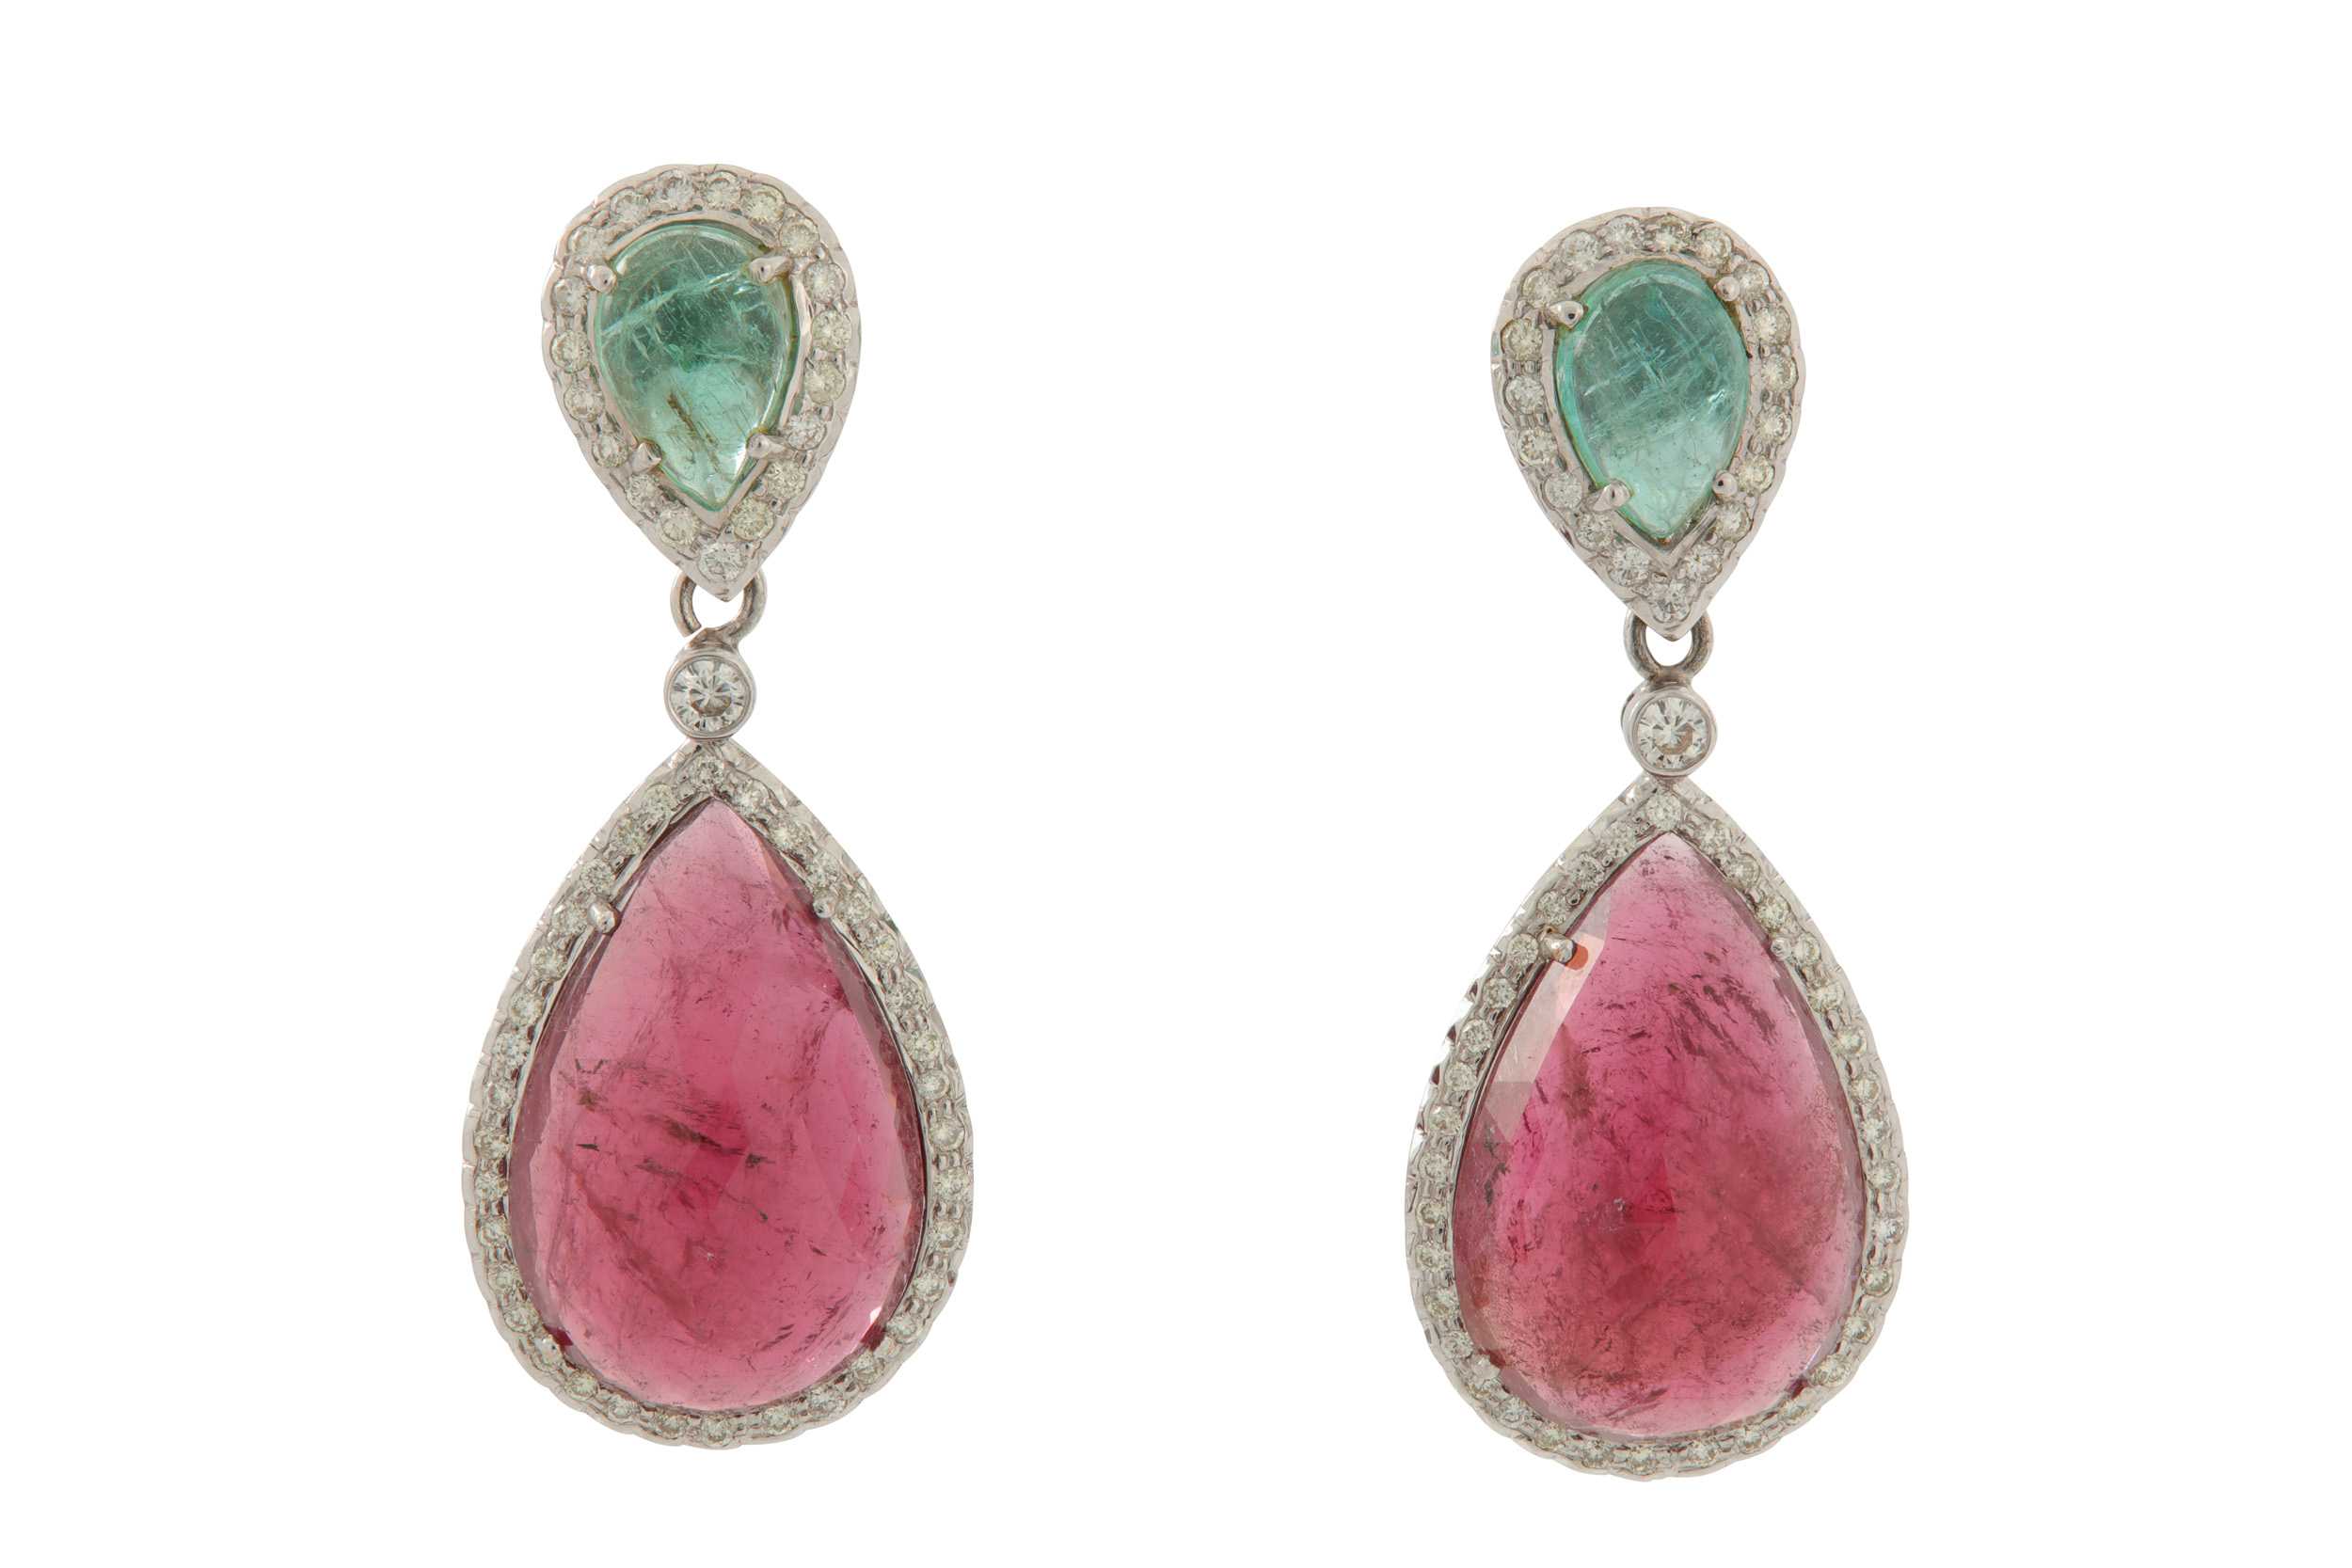 Lot 43 - A pair of emerald, tourmaline and diamond pendent earrings